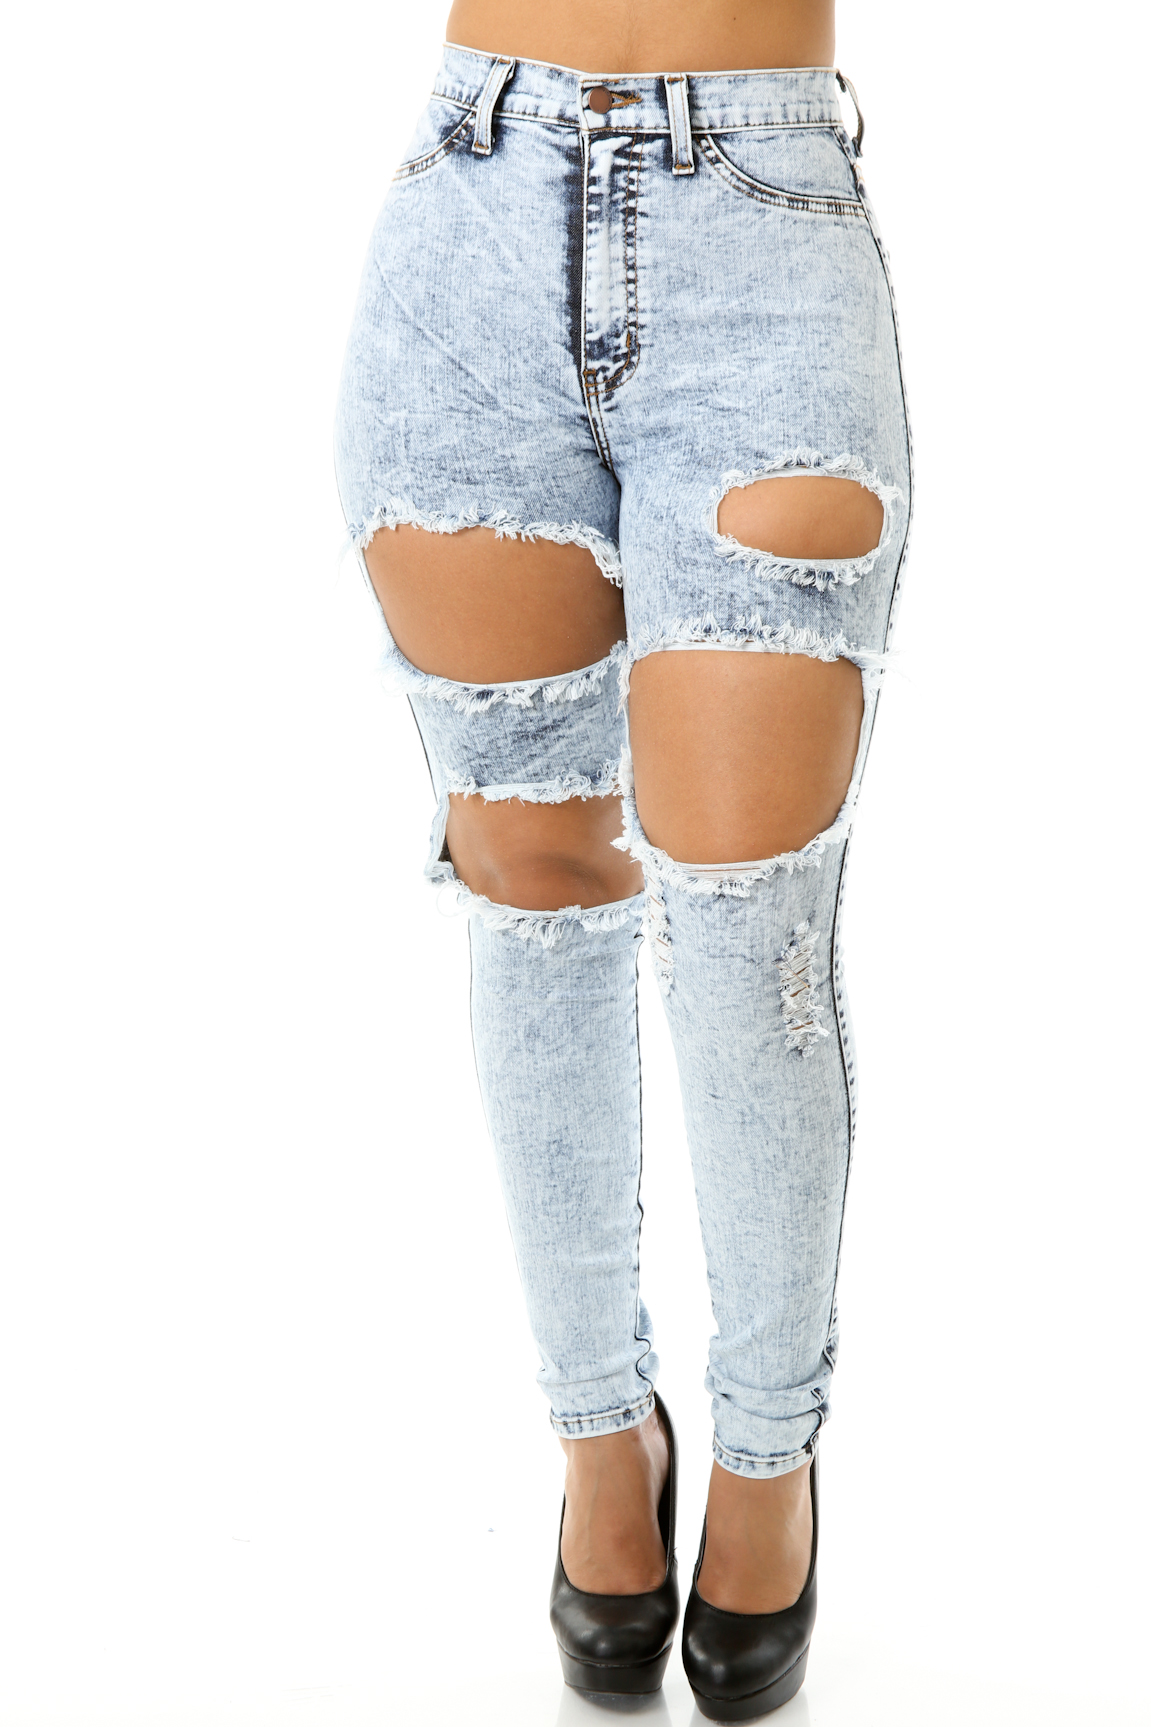 Sep 18,  · Look for high-waisted jeans that are boyfriend cut or bootcut denim to balance out your proportions. [2] Avoid high-waisted jeans with no give in the waist, as this will squeeze your stomach and you will feel uncomfortable wearing them%(2).